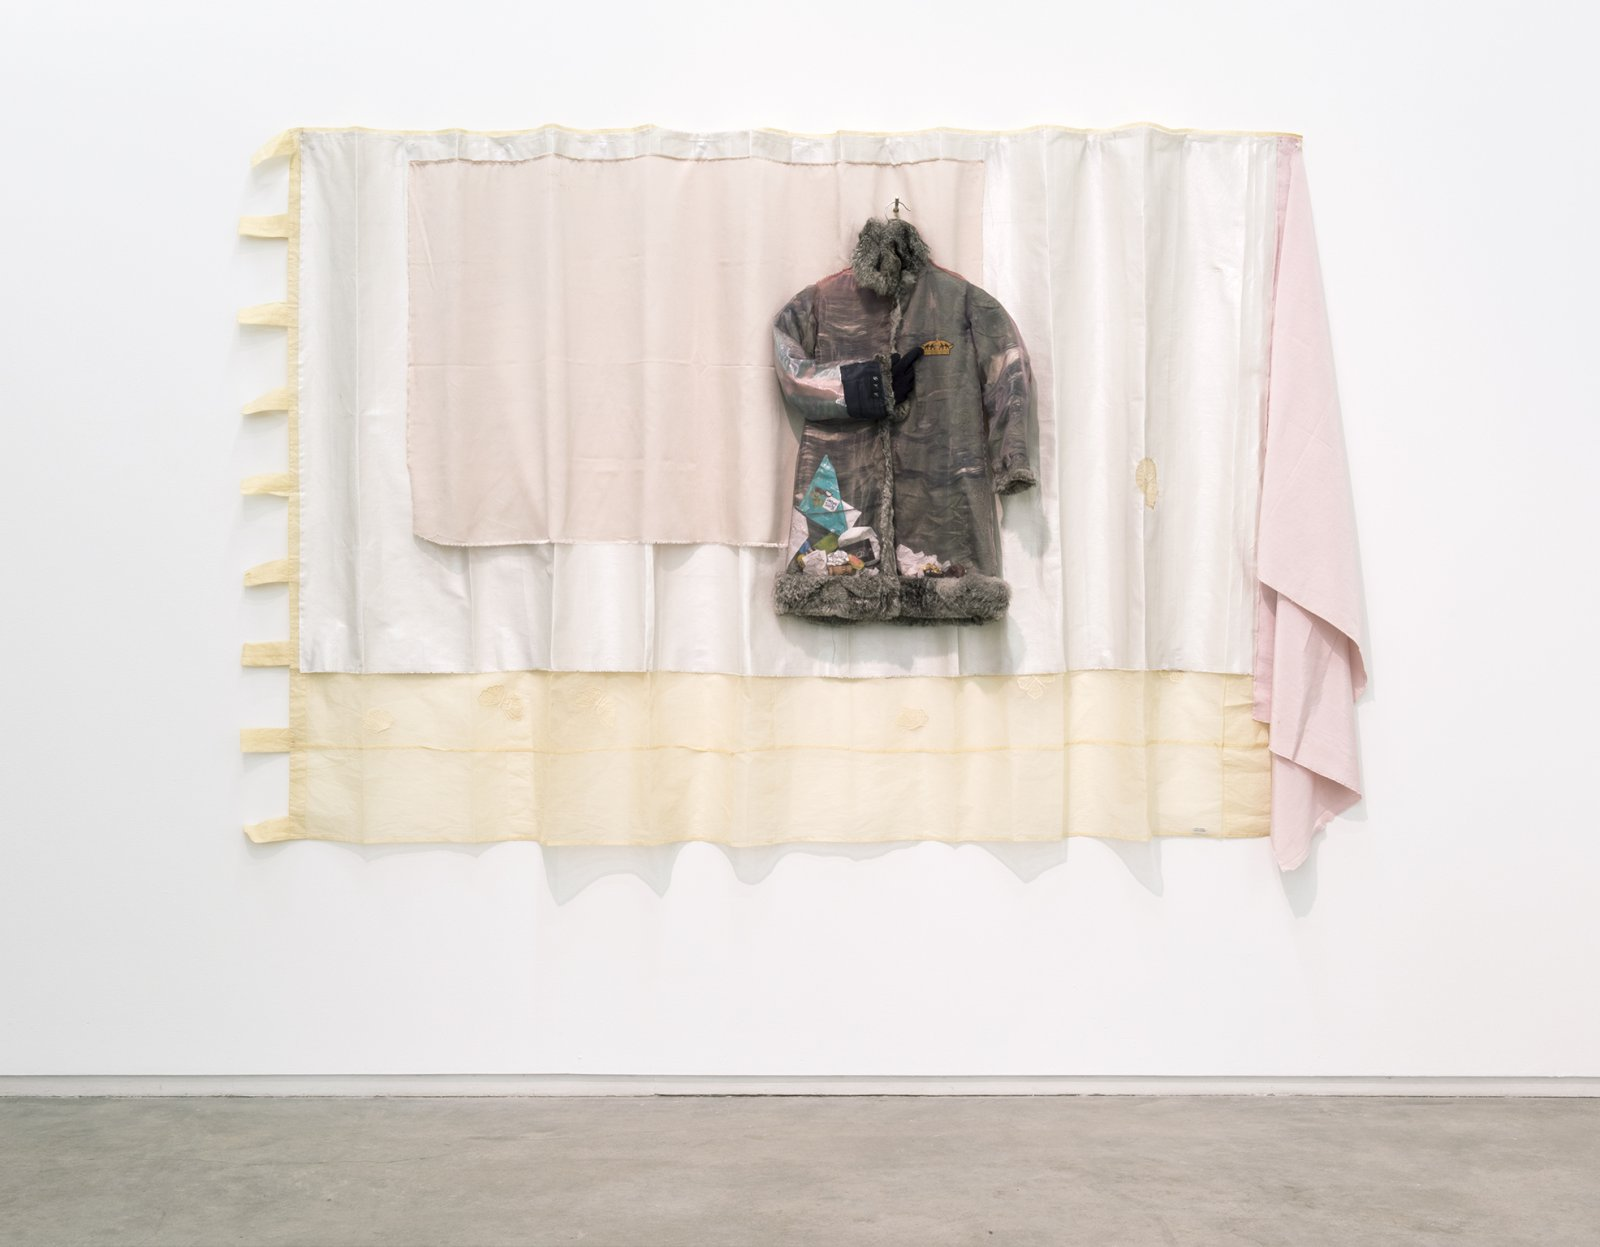 Liz Magor, Study for a Farce, 2012, textile, fur, found objects, 60 x 96 x 8 in. (152 x 244 x 20 cm) by Liz Magor